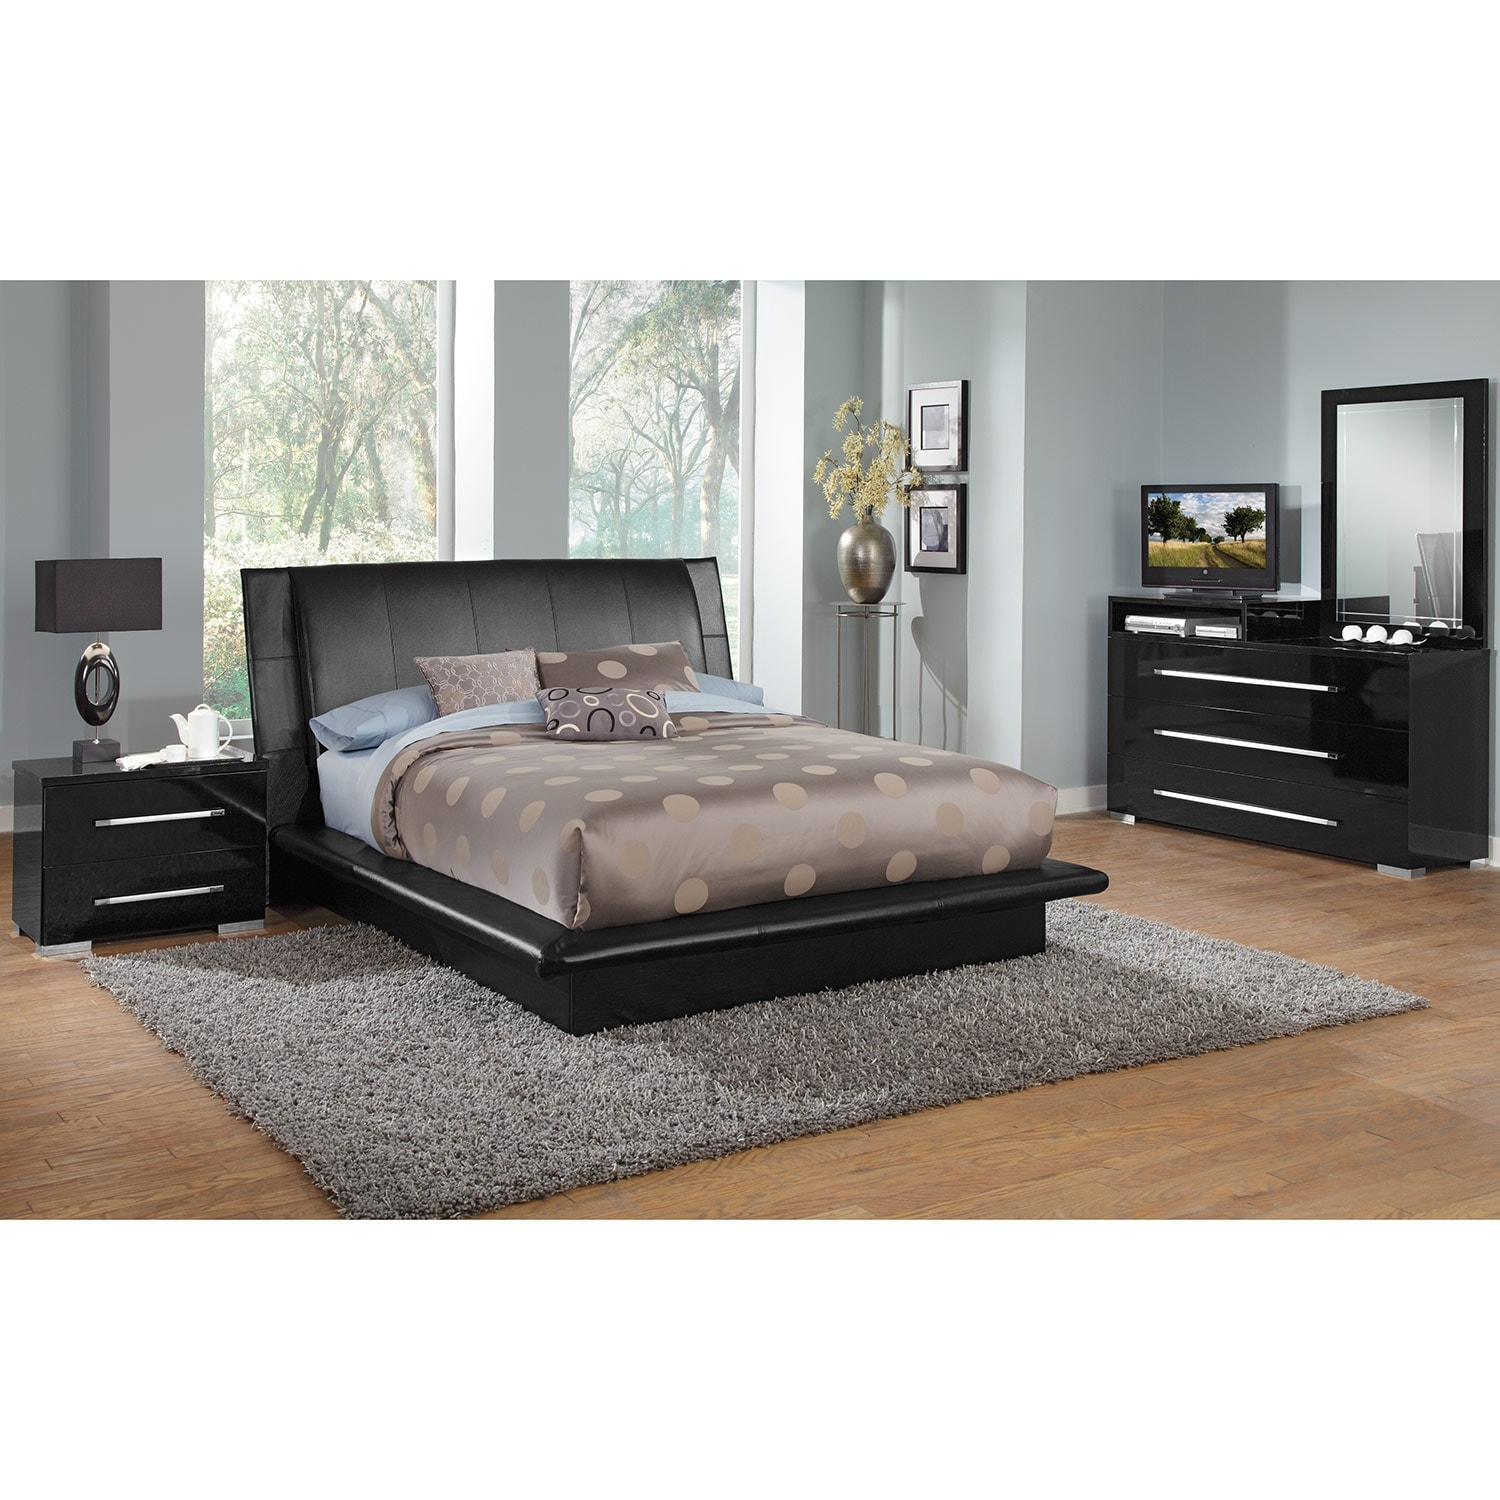 Dimora black queen bed value city furniture for Furniture queen bedroom sets